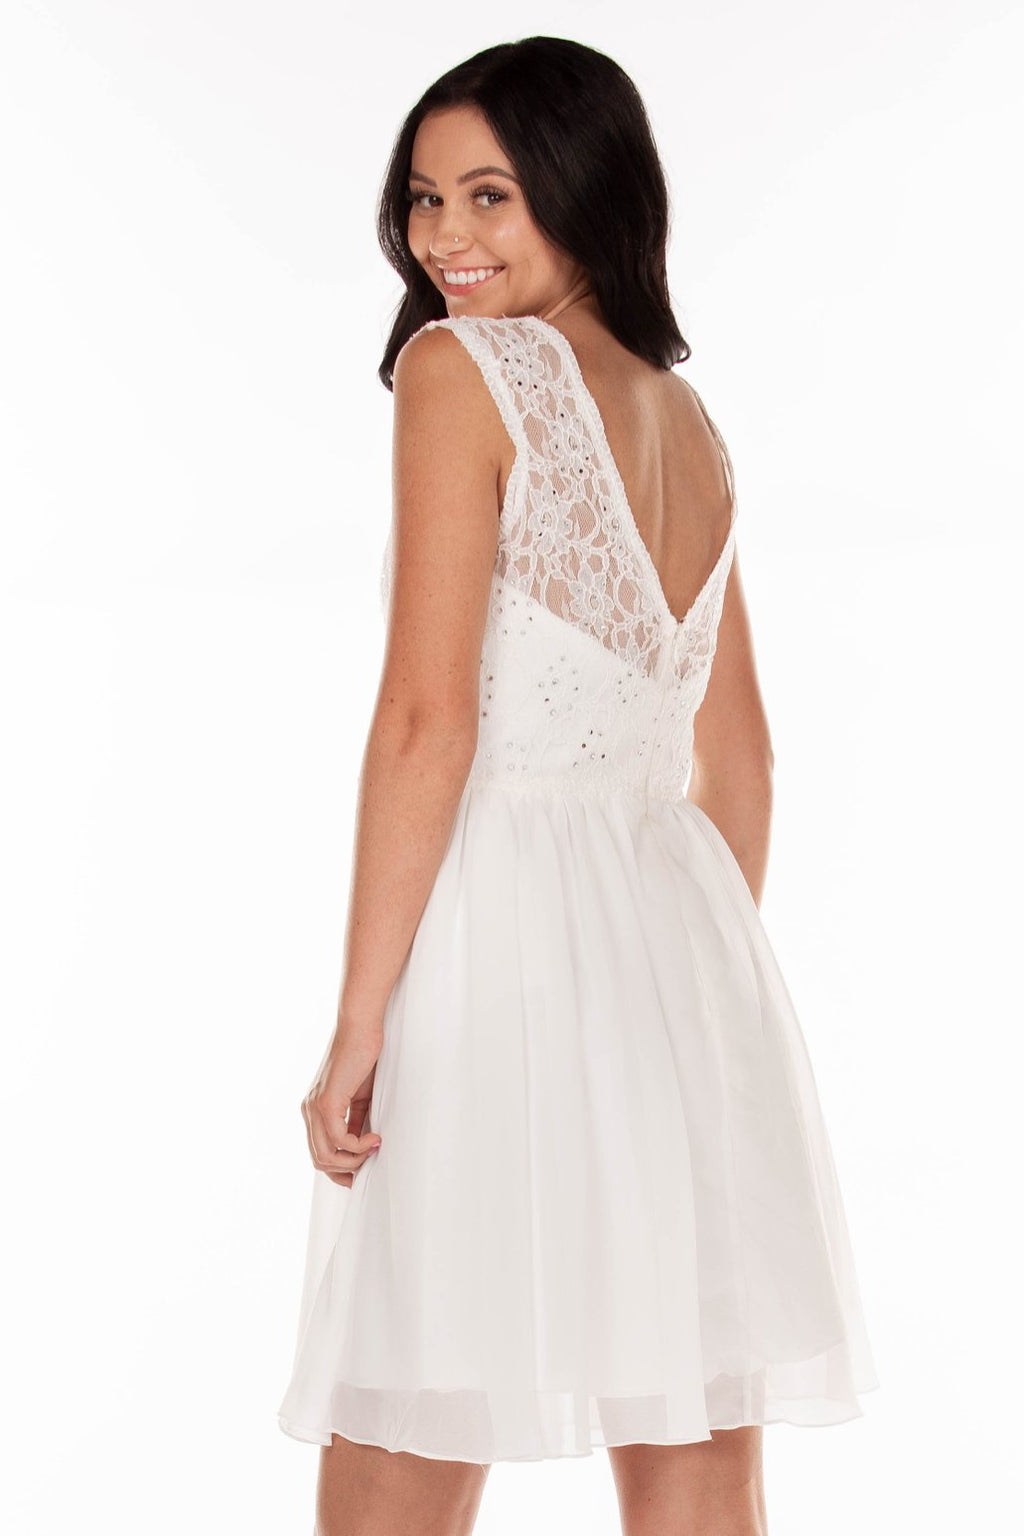 This PY 7502 fit-n-flare cocktail dress in ivory features a beaded lace high neck bodice with a sweetheart neckline underneath and an open back.